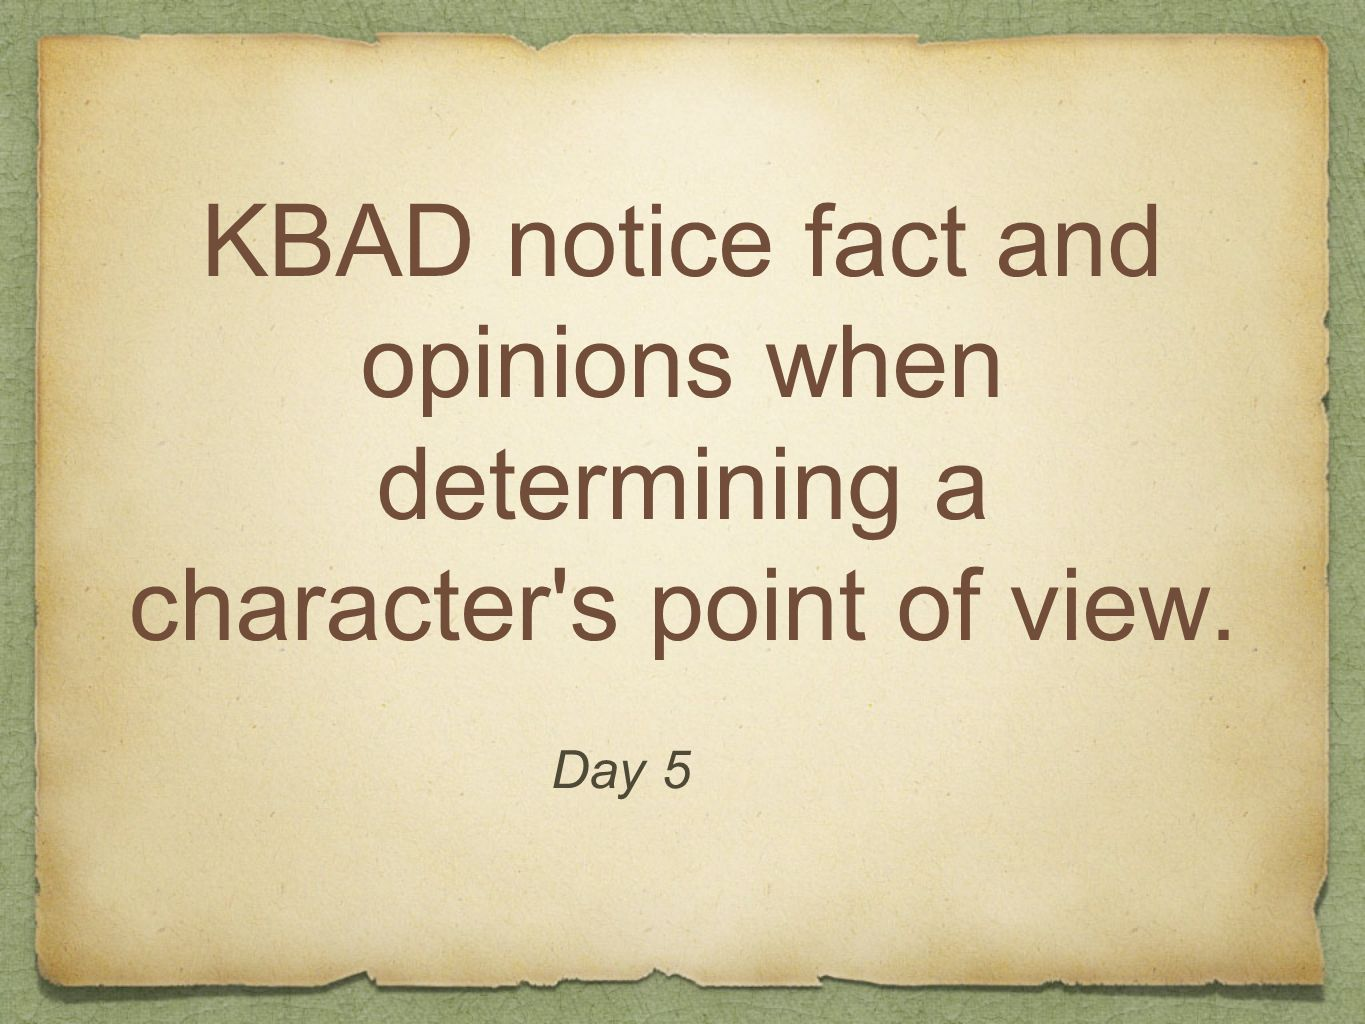 KBAD notice fact and opinions when determining a character's point of view. Day 5